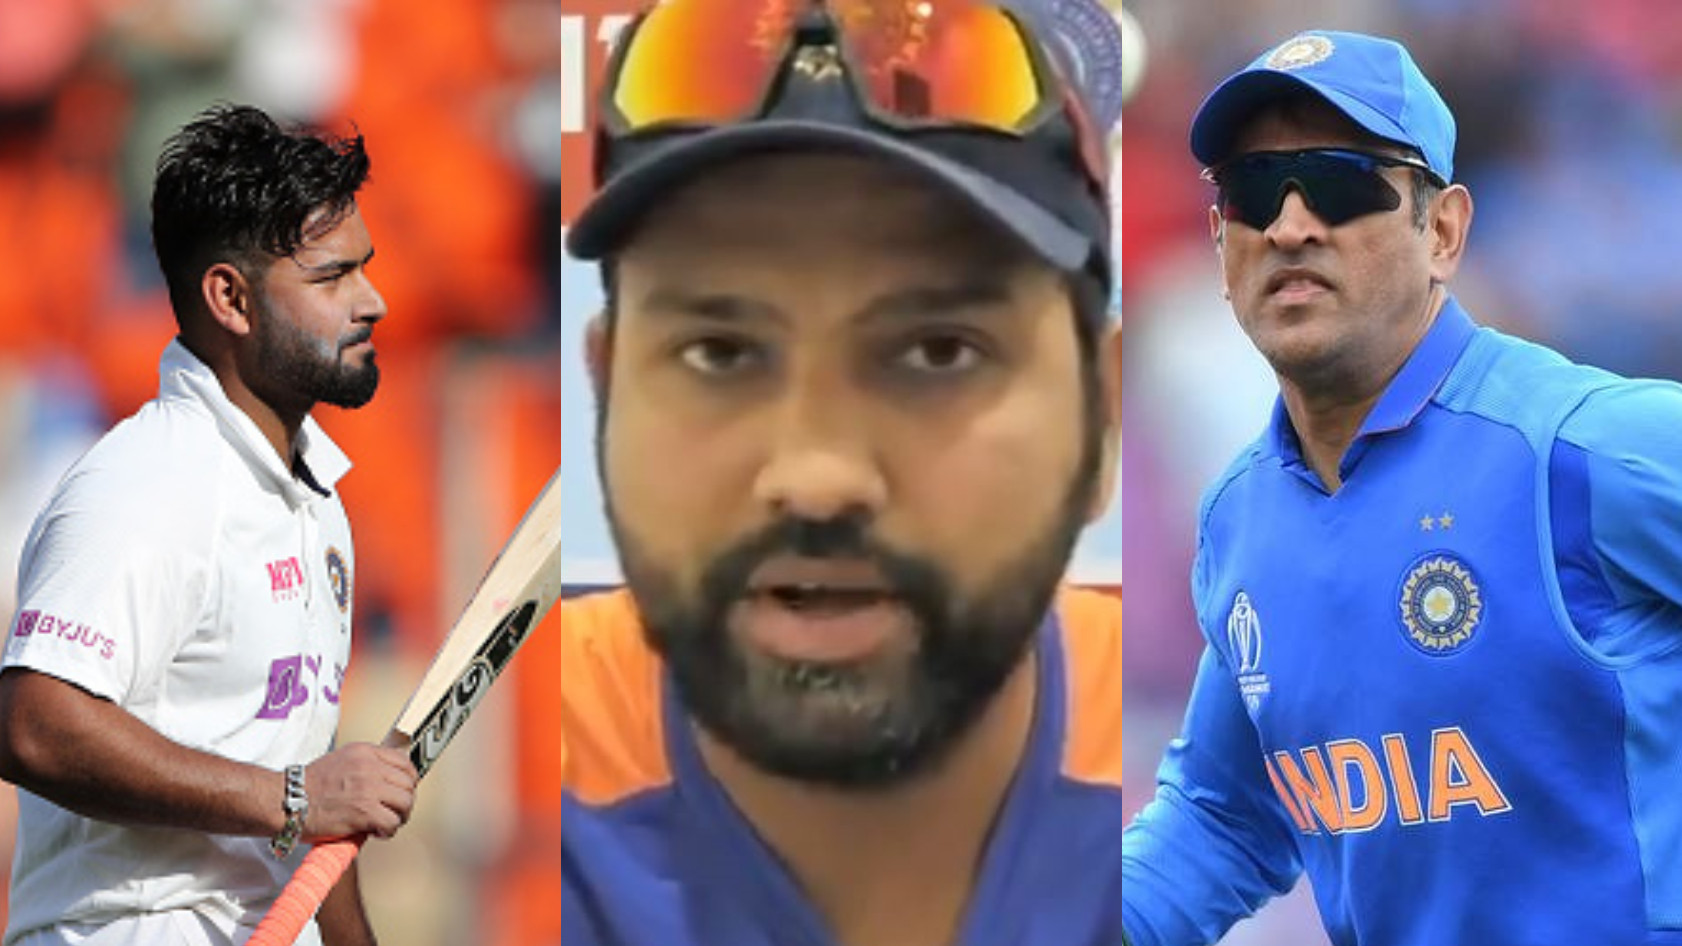 """IND v ENG 2021: """"Rishabh Pant is more than ready to fill MS Dhoni's shoes,"""" says Rohit Sharma"""